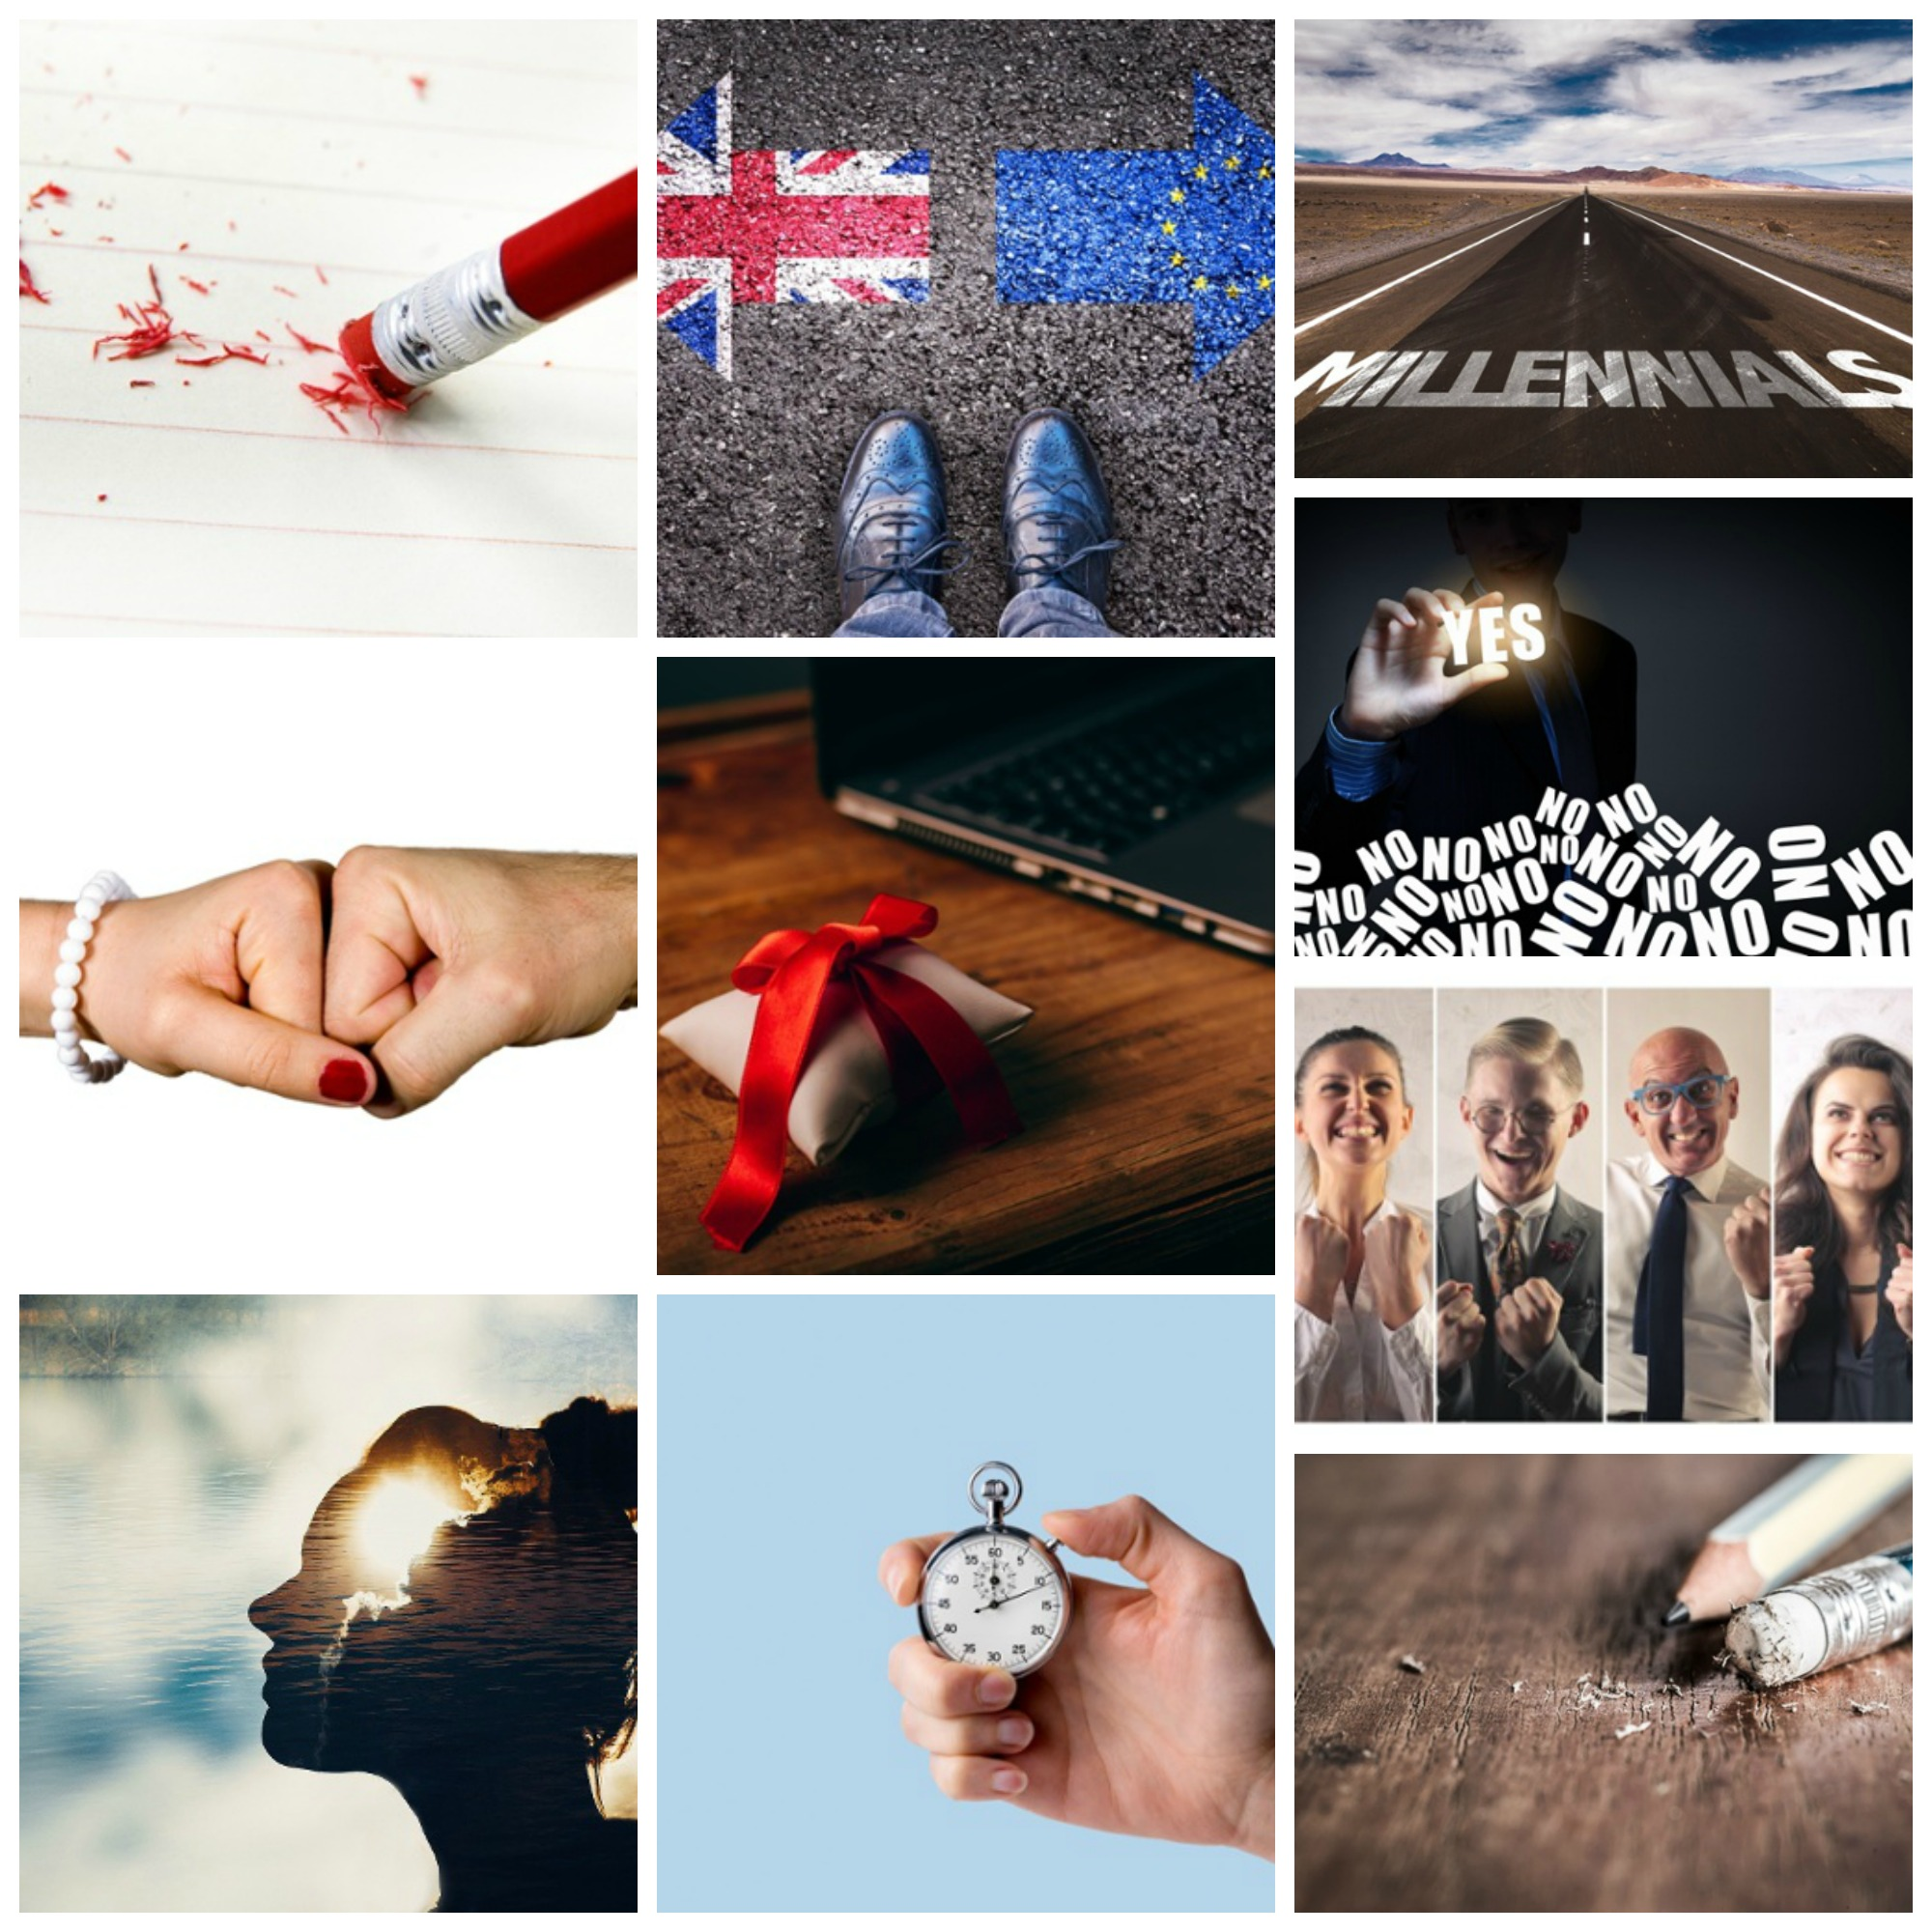 blog-collage.jpg